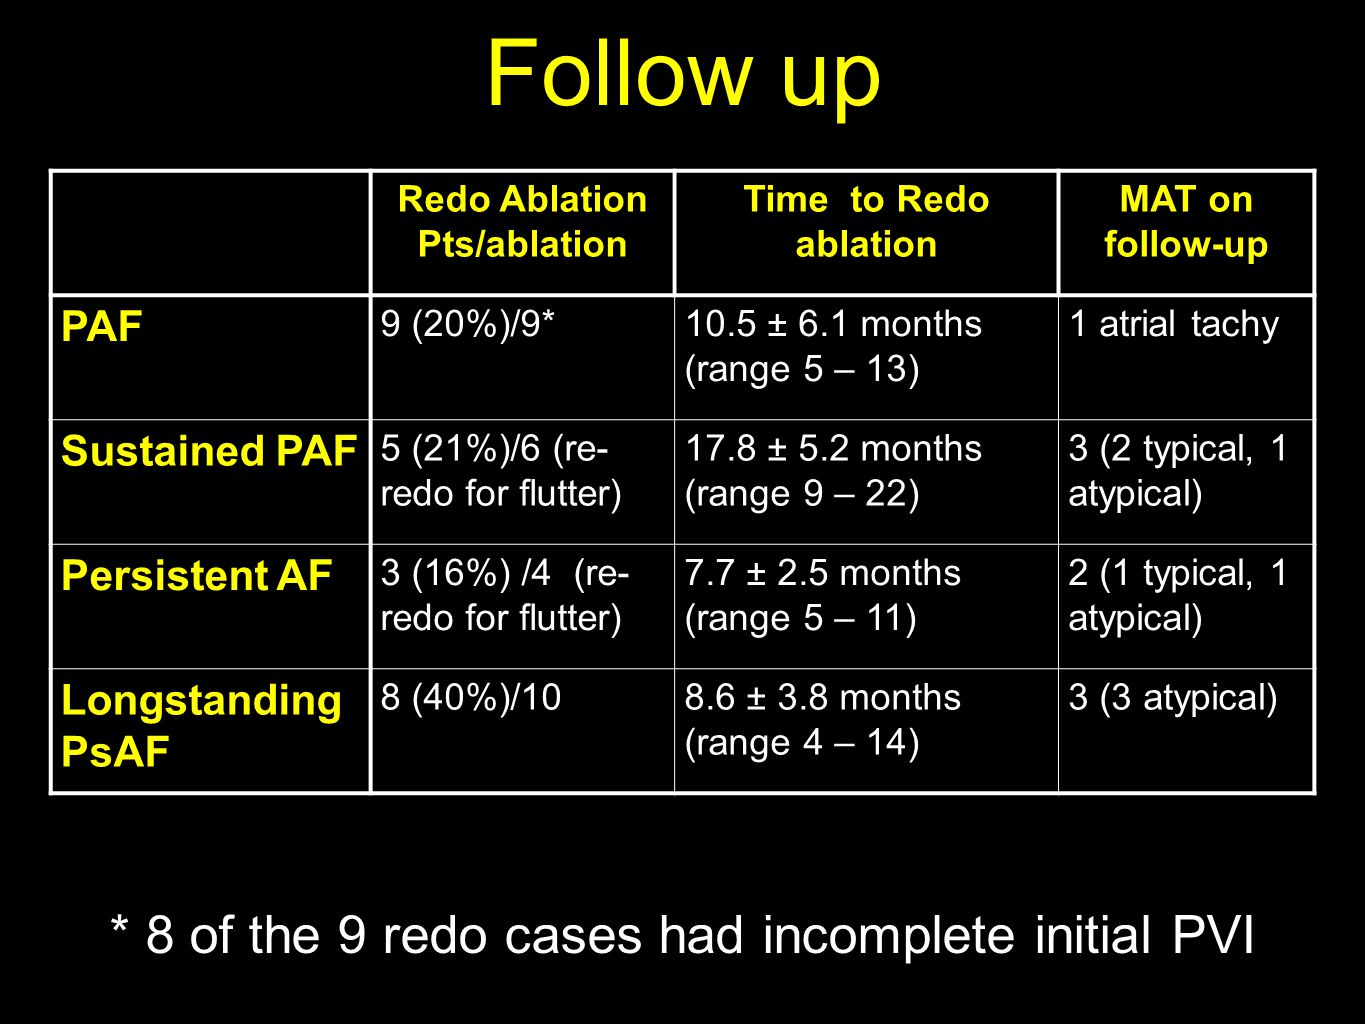 Follow up Redo Ablation Pts/ablation Time to Redo ablation MAT on follow-up PAF 9 (20%)/9*10.5 ± 6.1 months (range 5 – 13) 1 atrial tachy Sustained PAF 5 (21%)/6 (re- redo for flutter) 17.8 ± 5.2 months (range 9 – 22) 3 (2 typical, 1 atypical) Persistent AF 3 (16%) /4 (re- redo for flutter) 7.7 ± 2.5 months (range 5 – 11) 2 (1 typical, 1 atypical) Longstanding PsAF 8 (40%)/108.6 ± 3.8 months (range 4 – 14) 3 (3 atypical) * 8 of the 9 redo cases had incomplete initial PVI